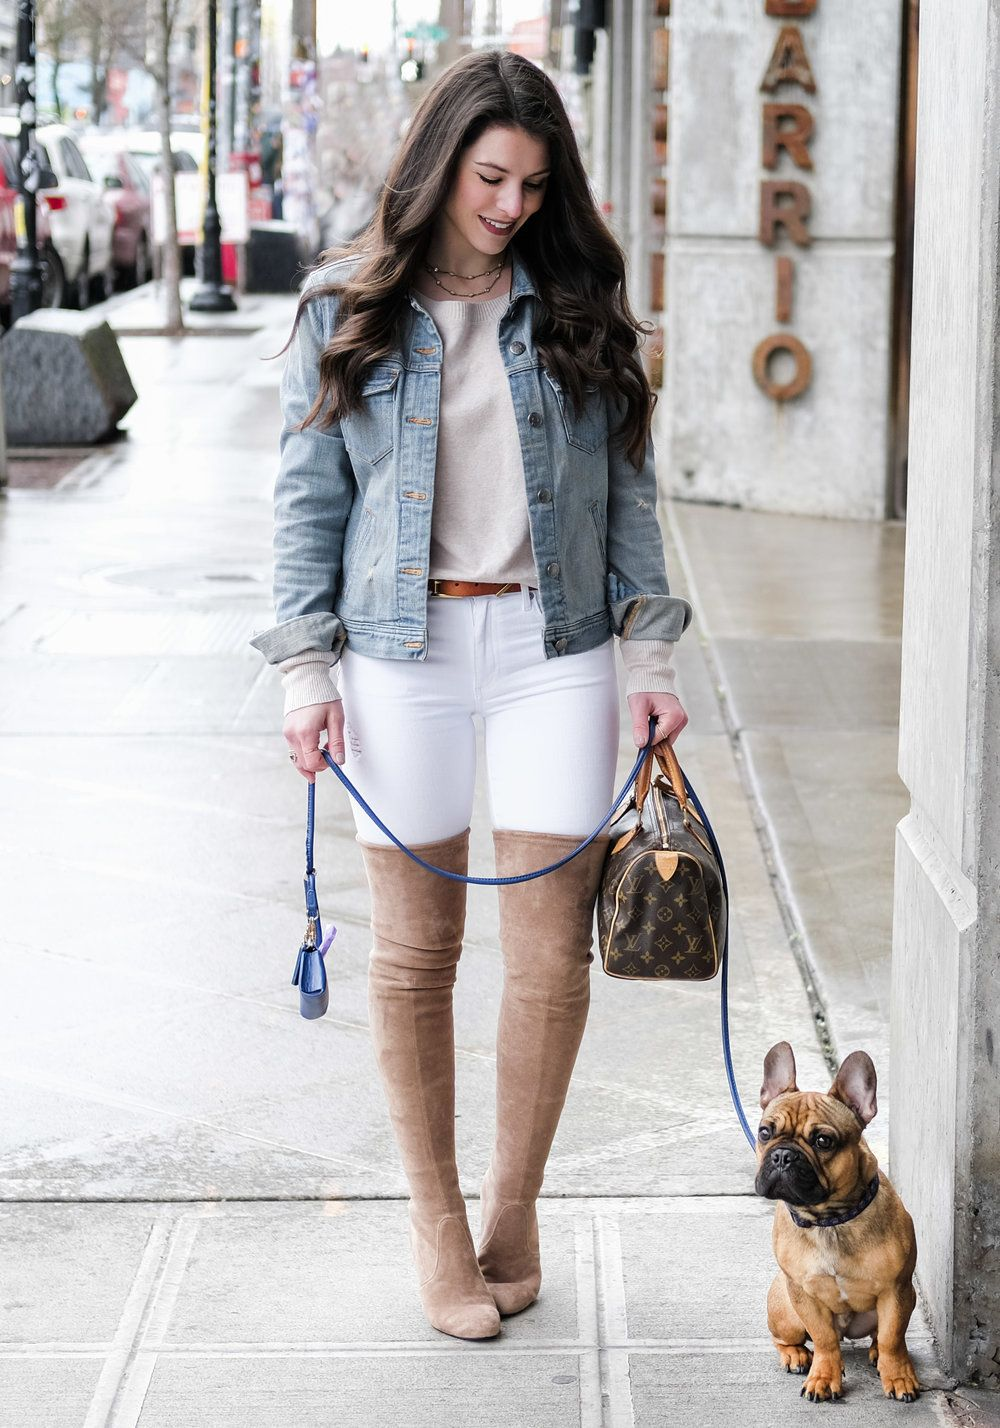 5 outfit ideas for early spring  early spring outfits